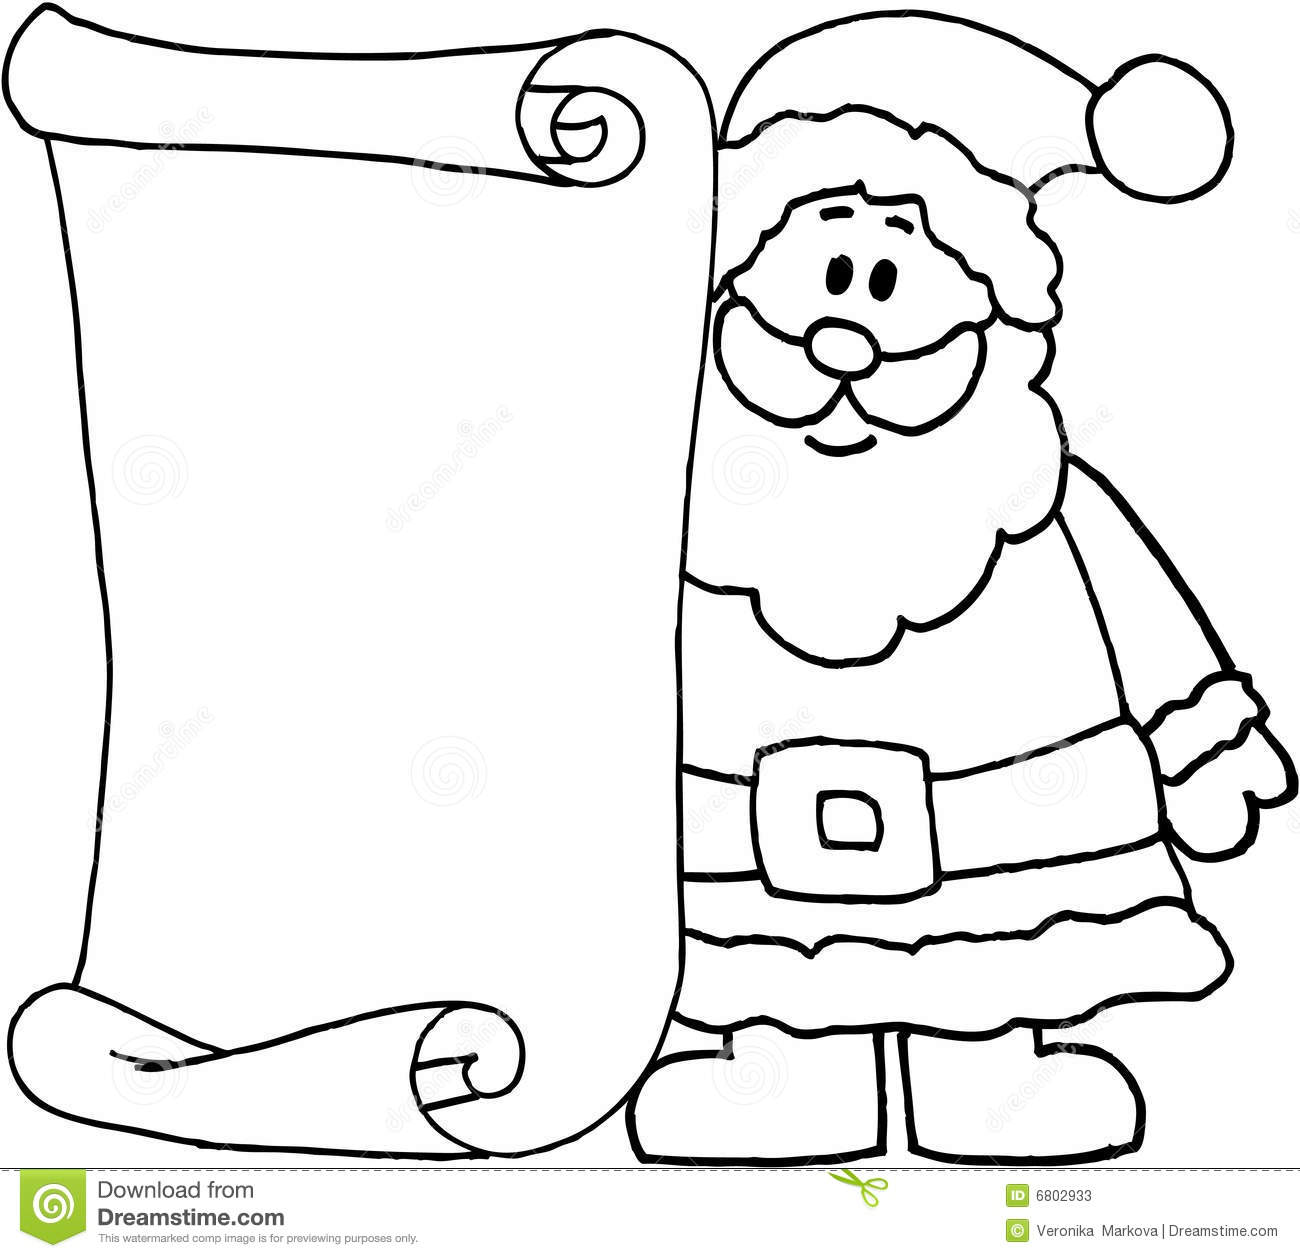 Free Printable Black And White Dear Santa Letter Clipart